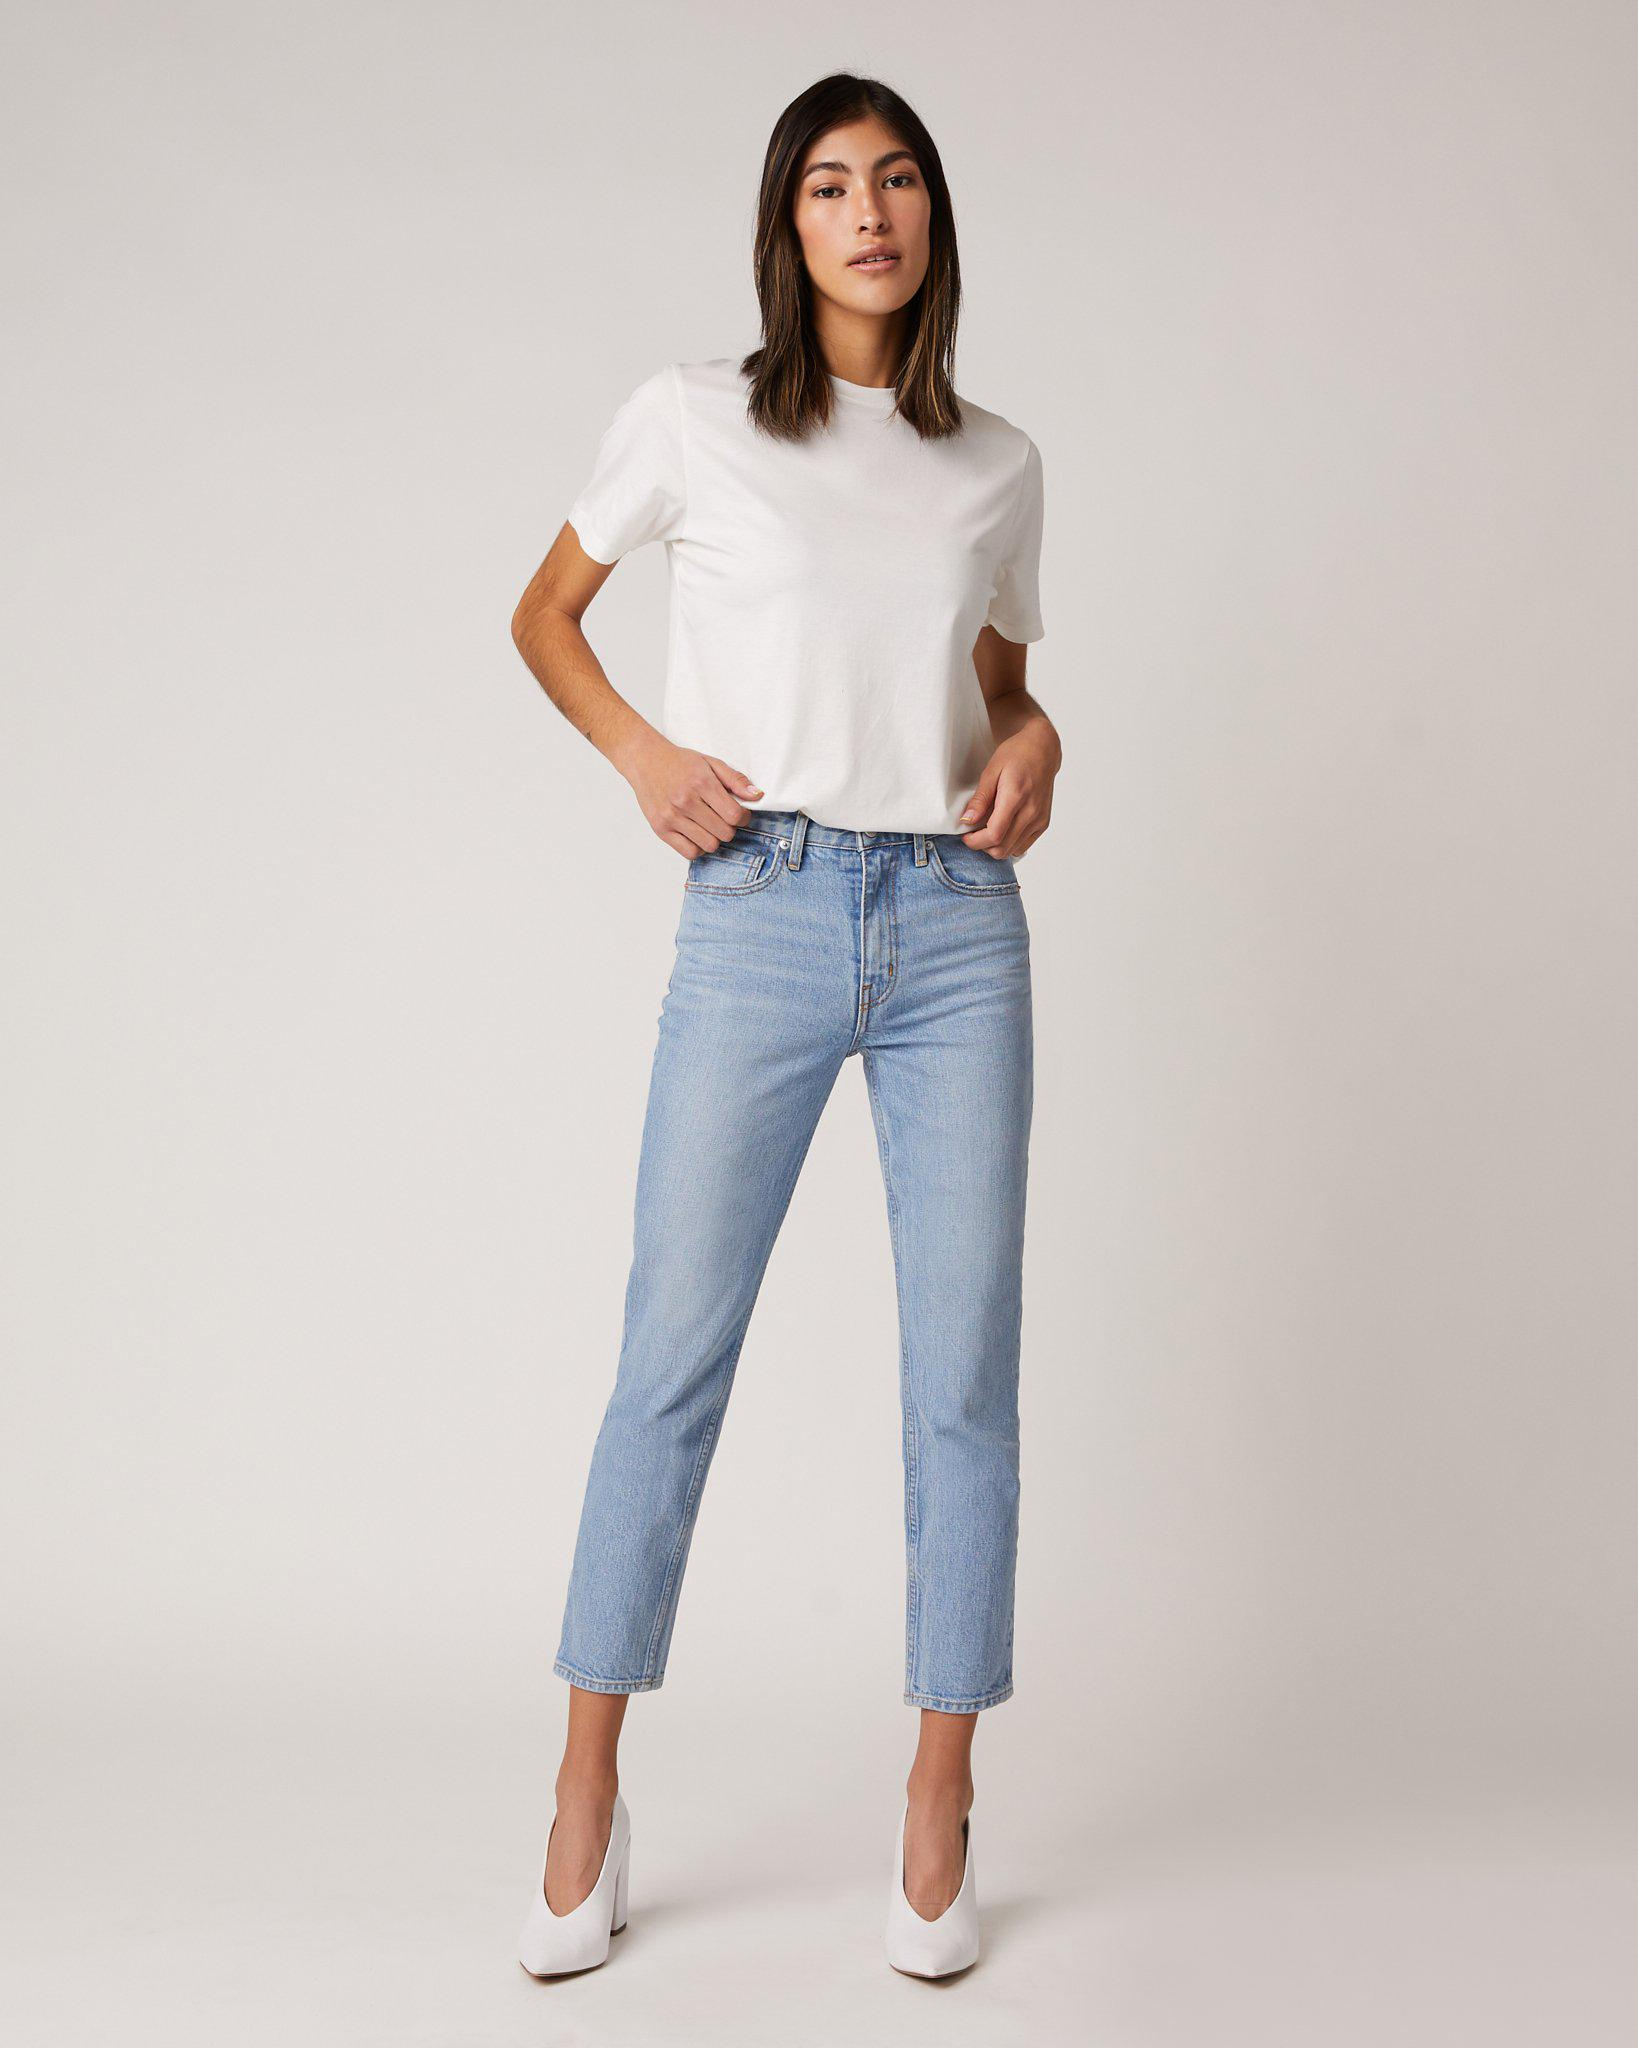 ABSLT Vintage Straight Jeans in Diffusion